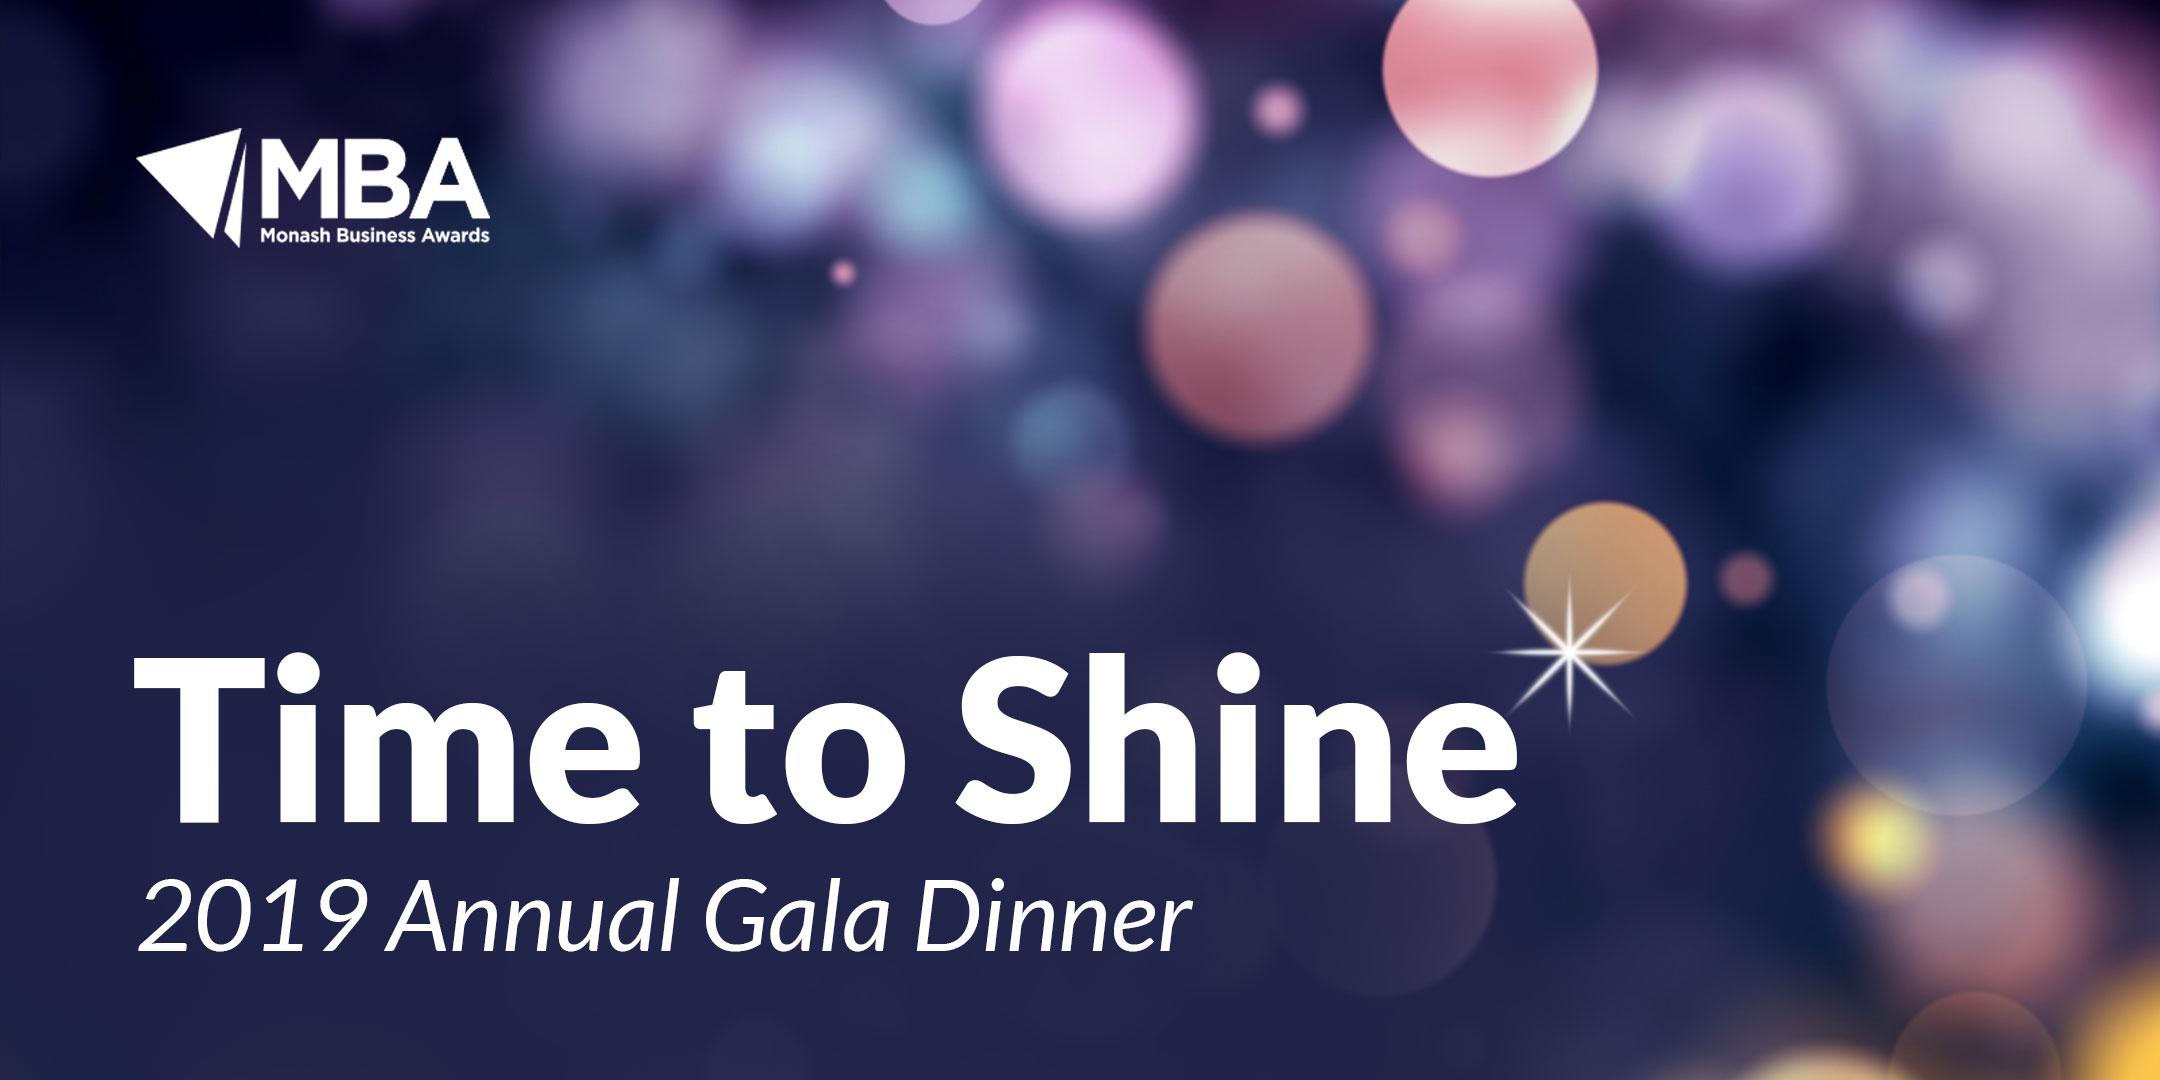 Countdown to the 2019 Gala